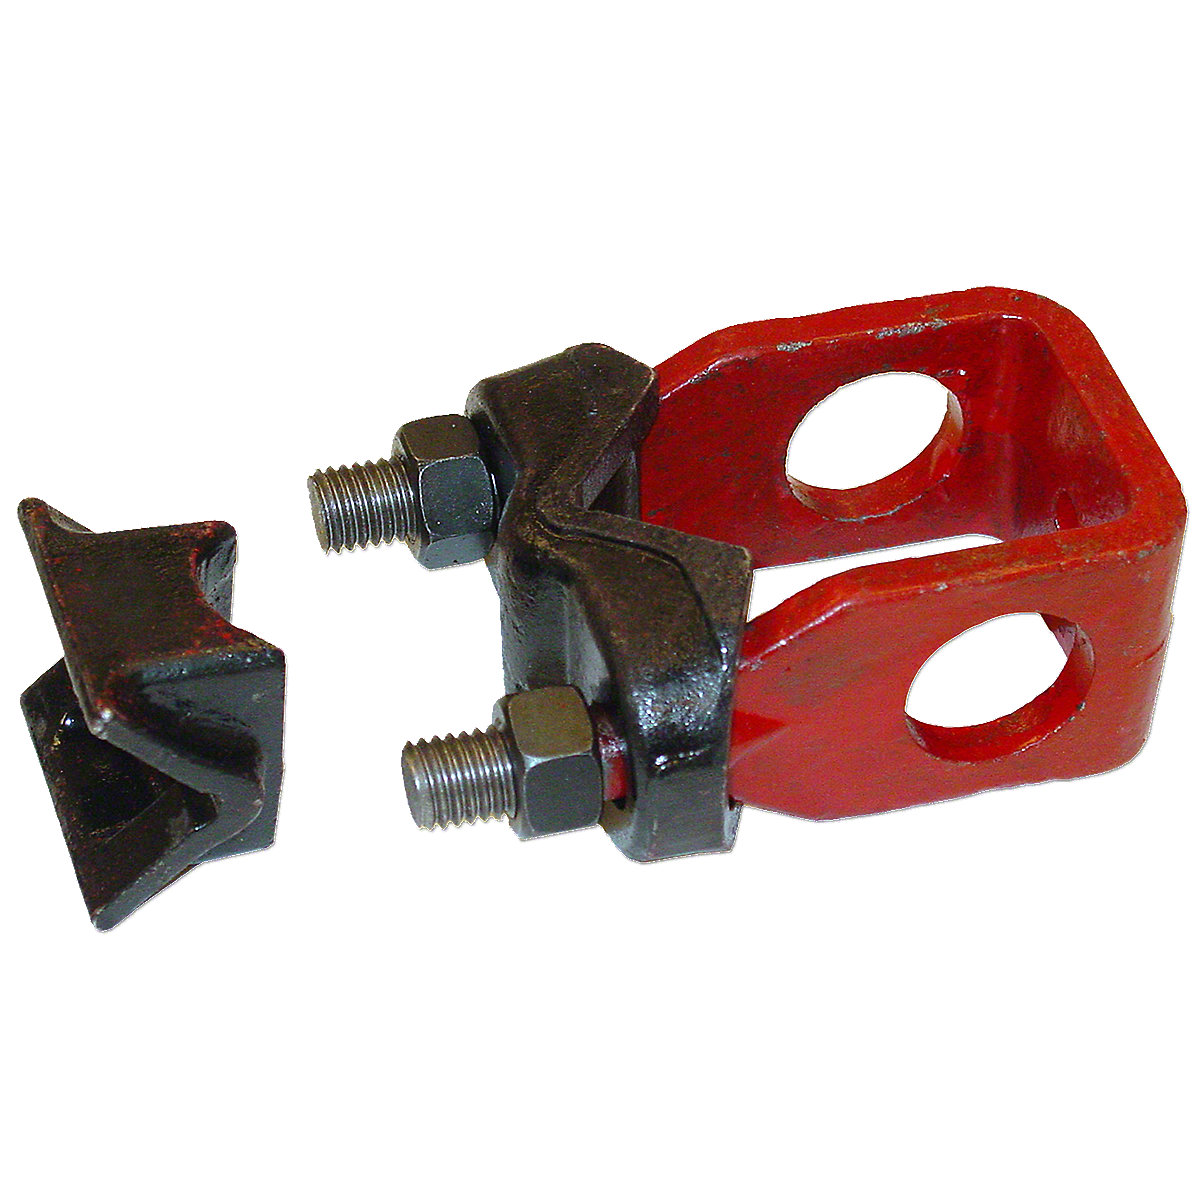 IHS025 Lay Off Clamp And Wedge Assembly